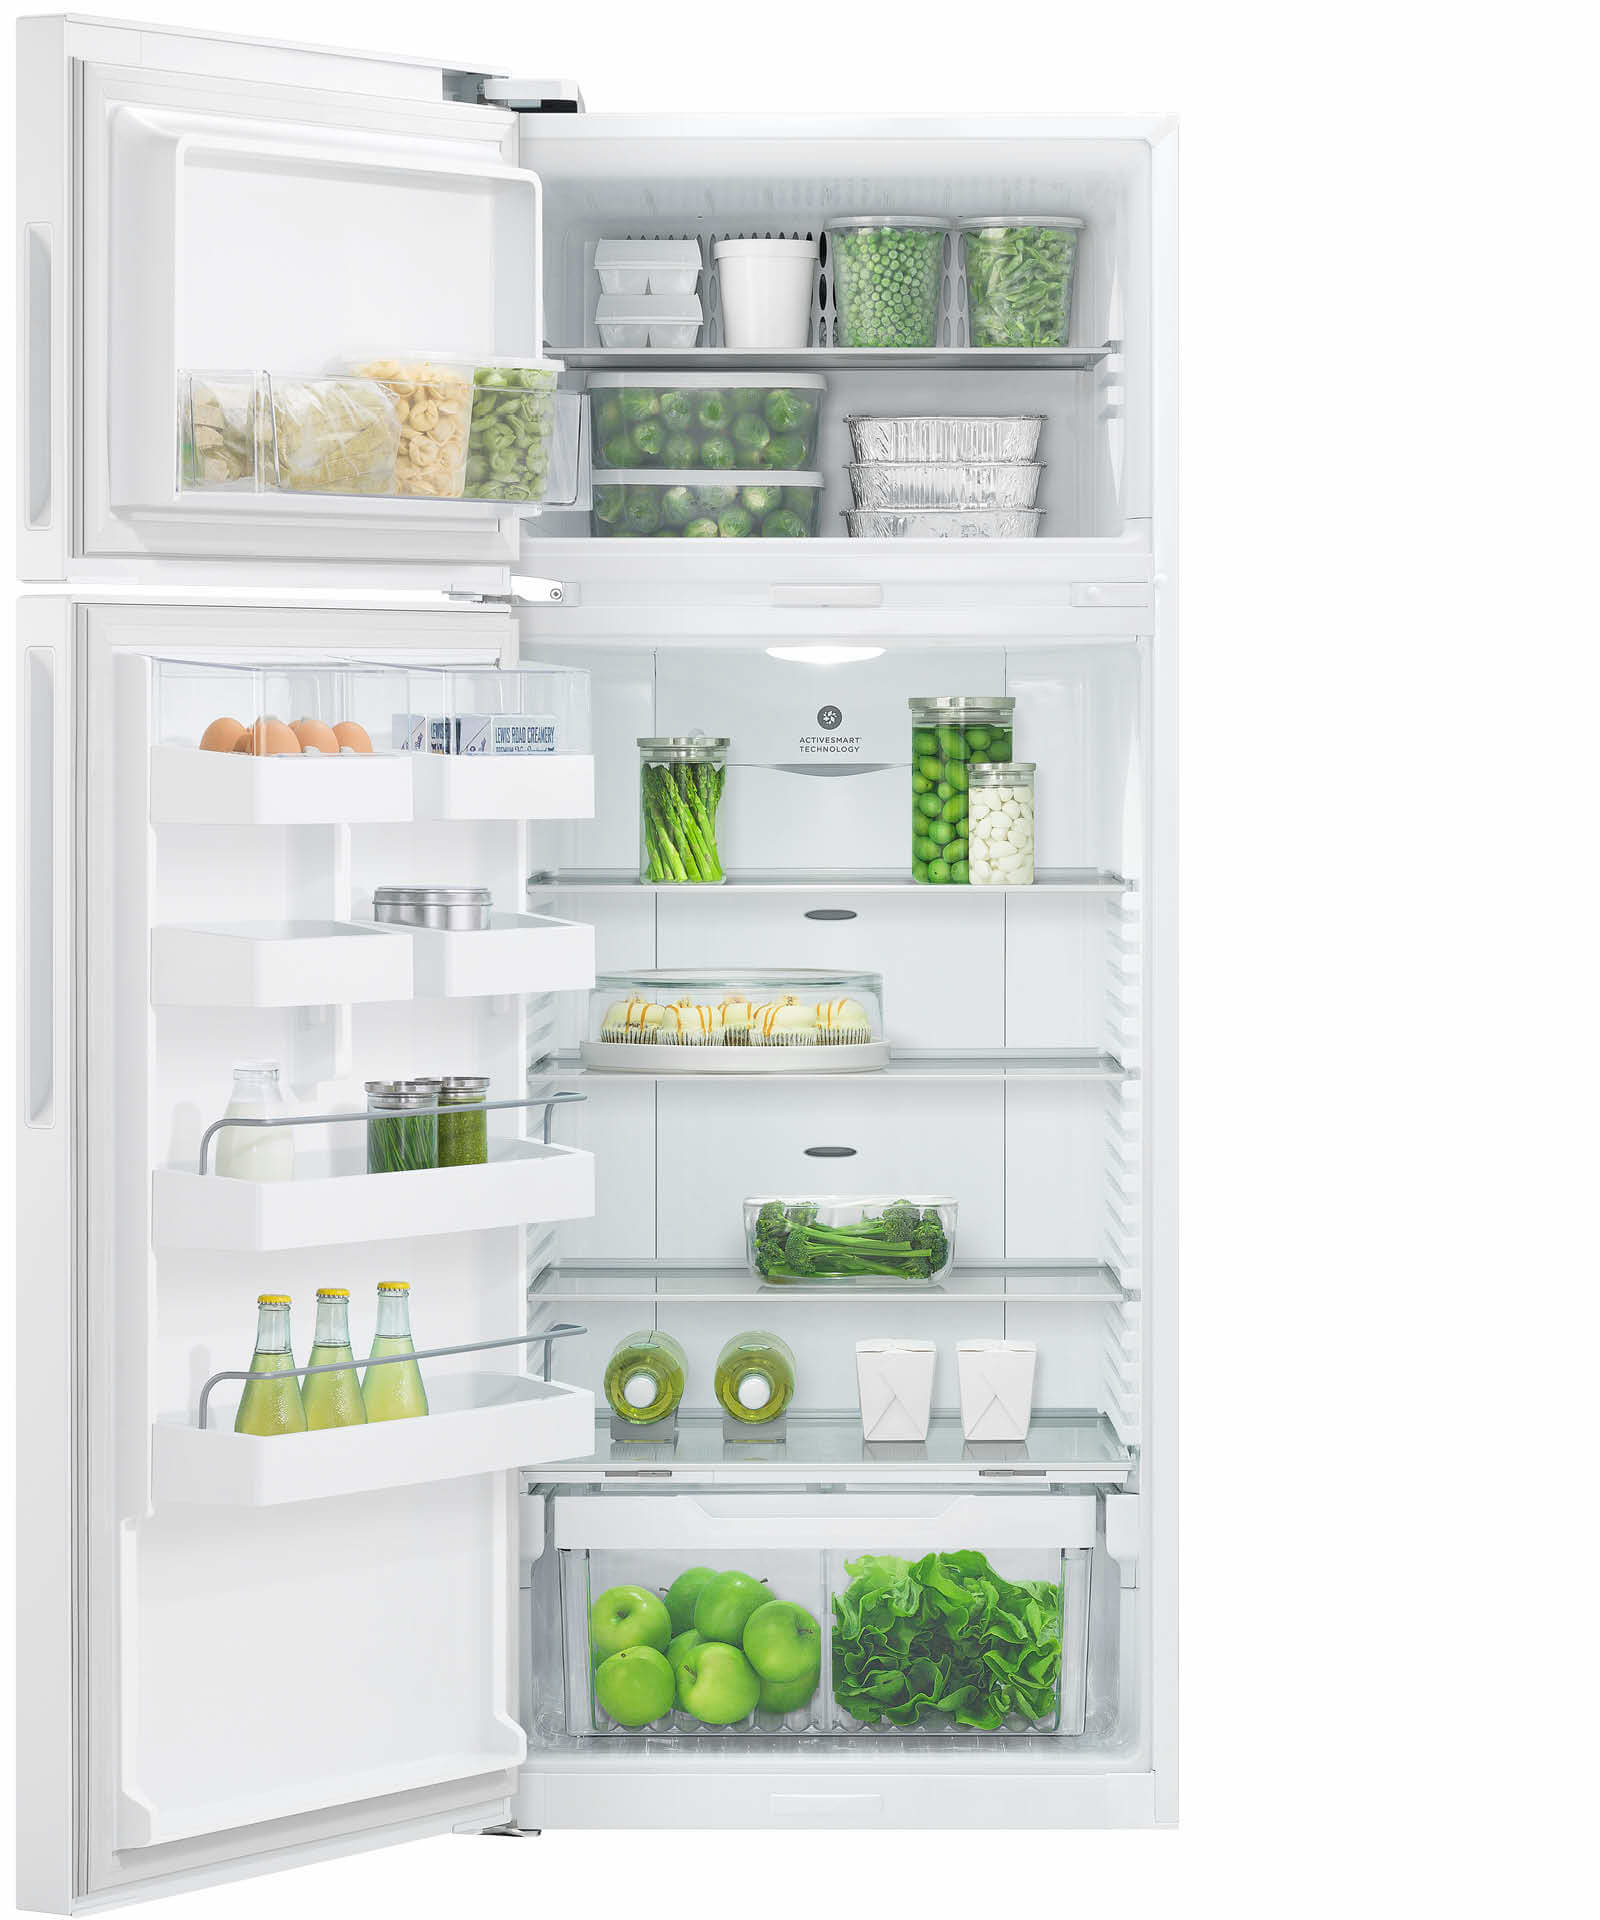 Fisher & Paykel 381 Ktr Fridge White (Factory Second)